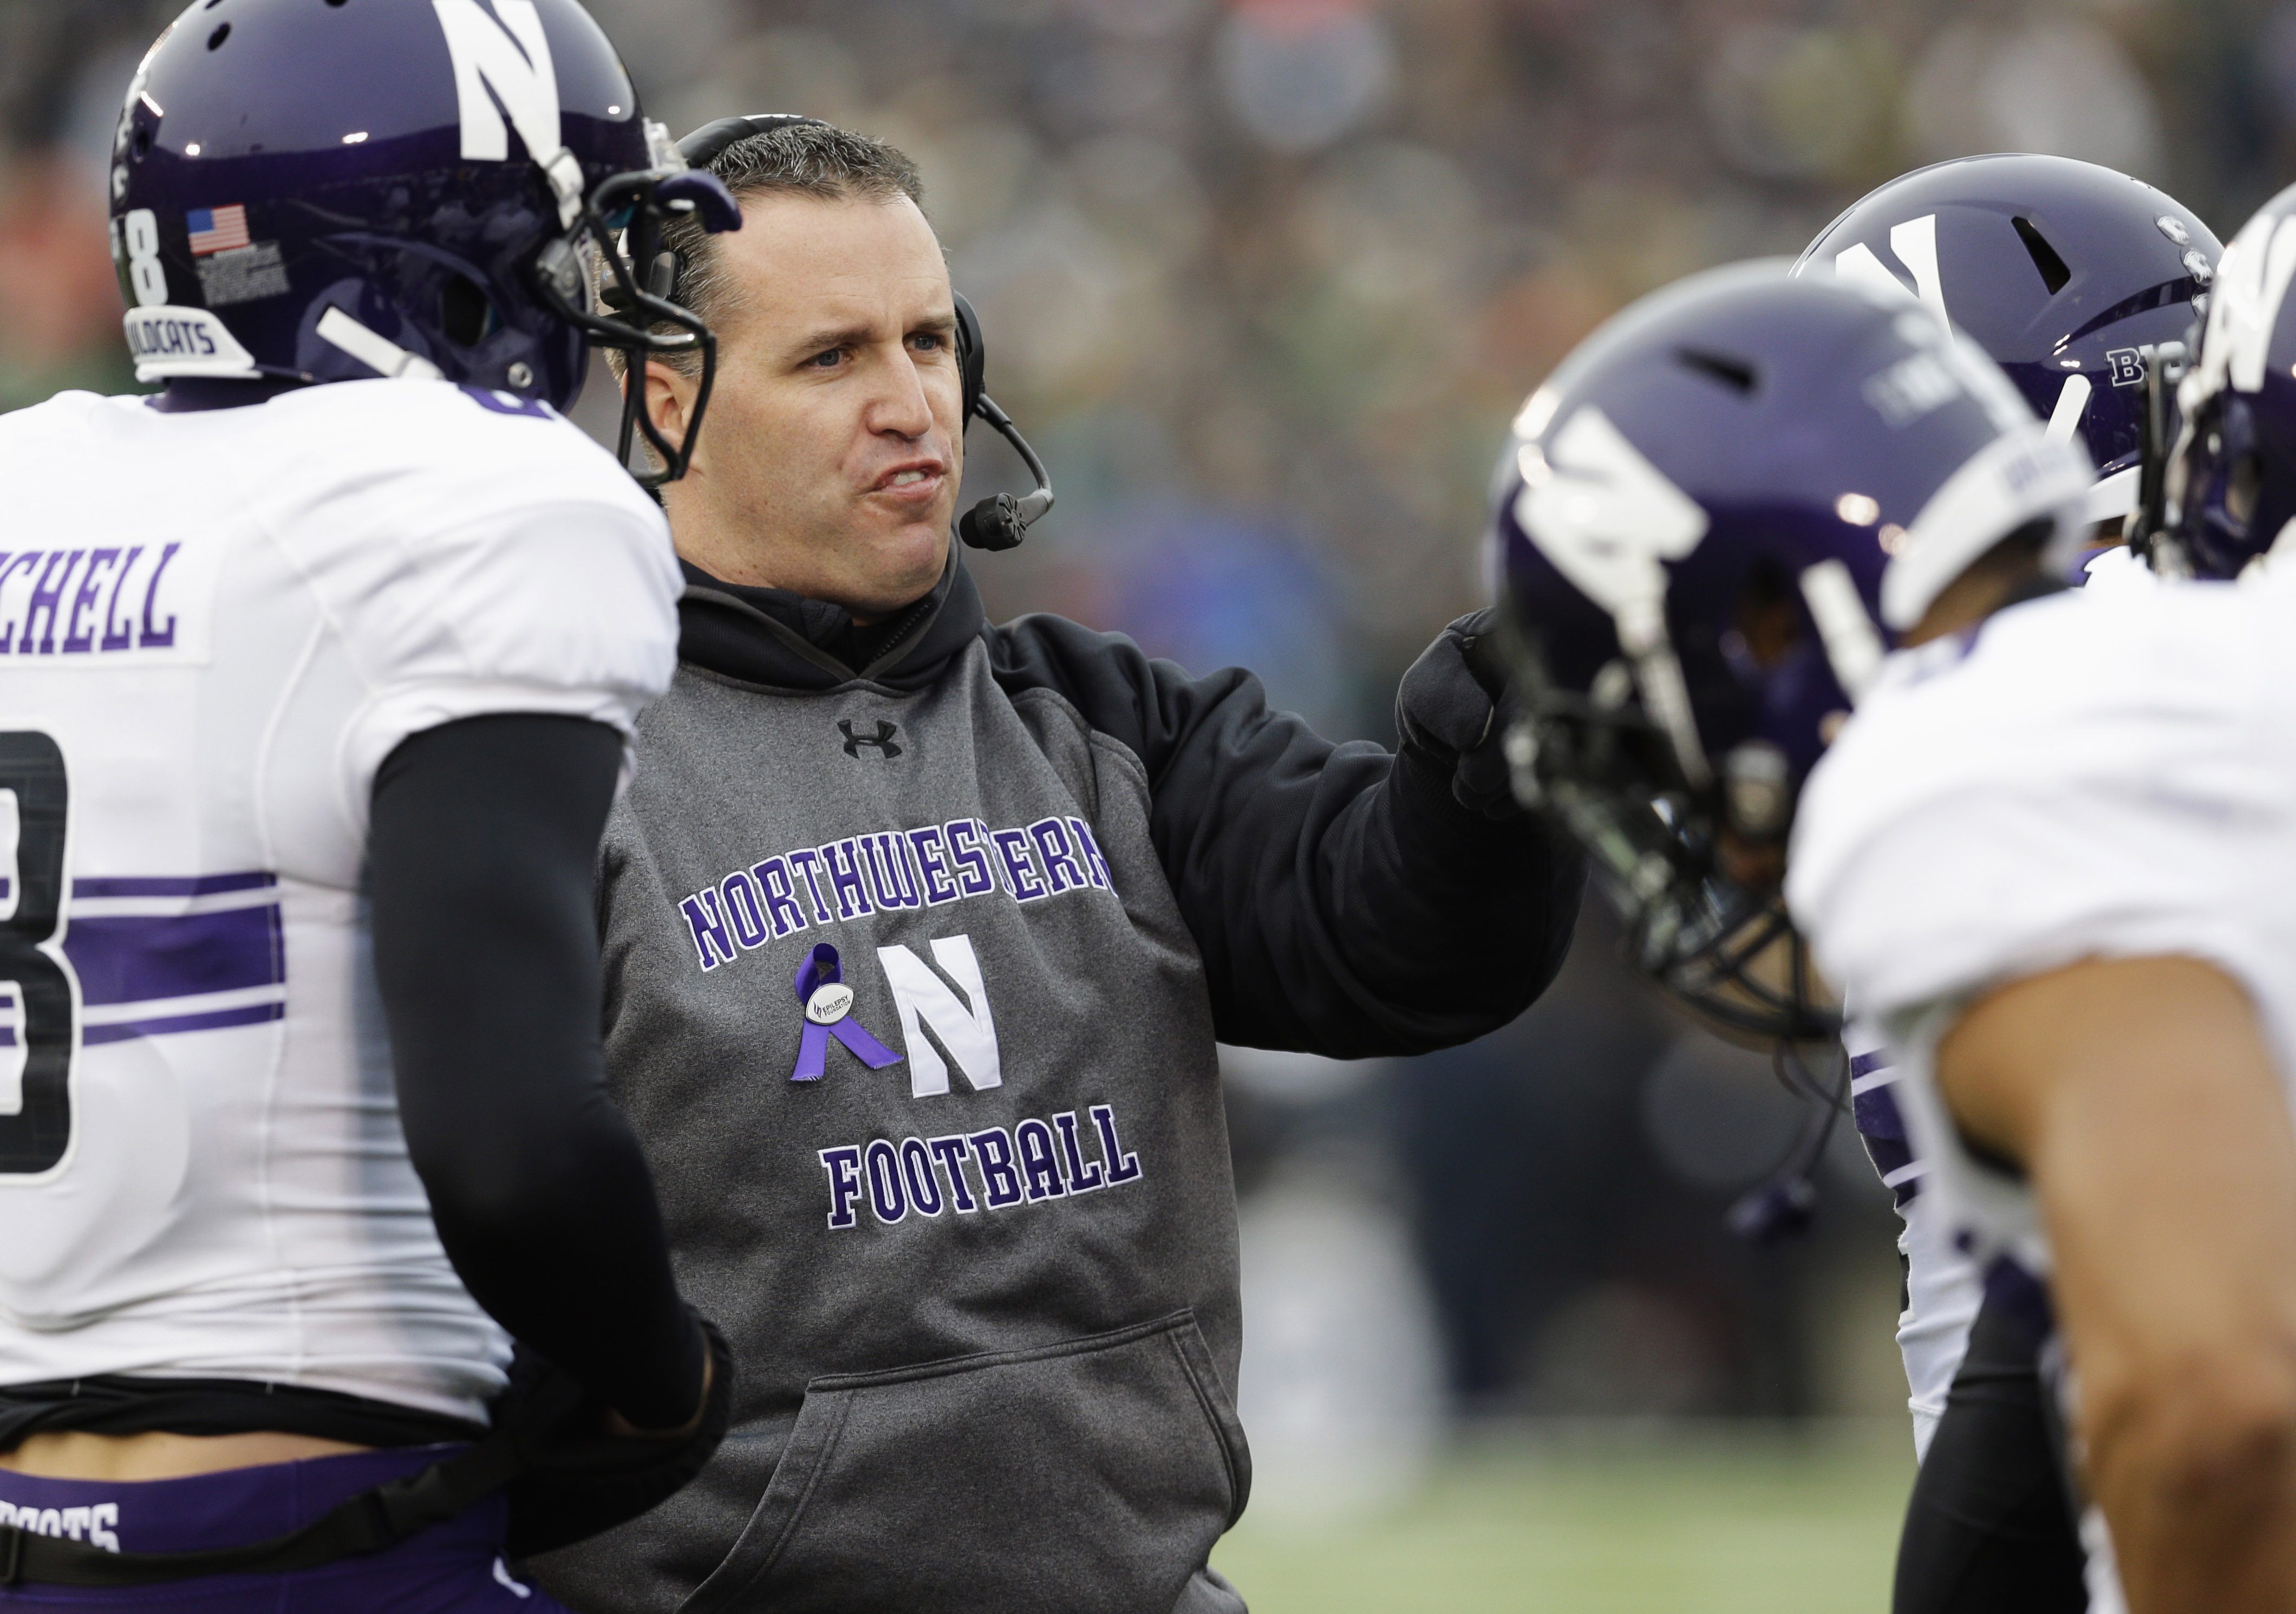 FILE - In this Nov. 15, 2014, file photo, Northwestern head coach Pat Fitzgerald talks to his team during an NCAA college football game against Notre Dame in South Bend. Fitzgerald is entering his 10th season leading his alma mater.  Northwestern hosts St